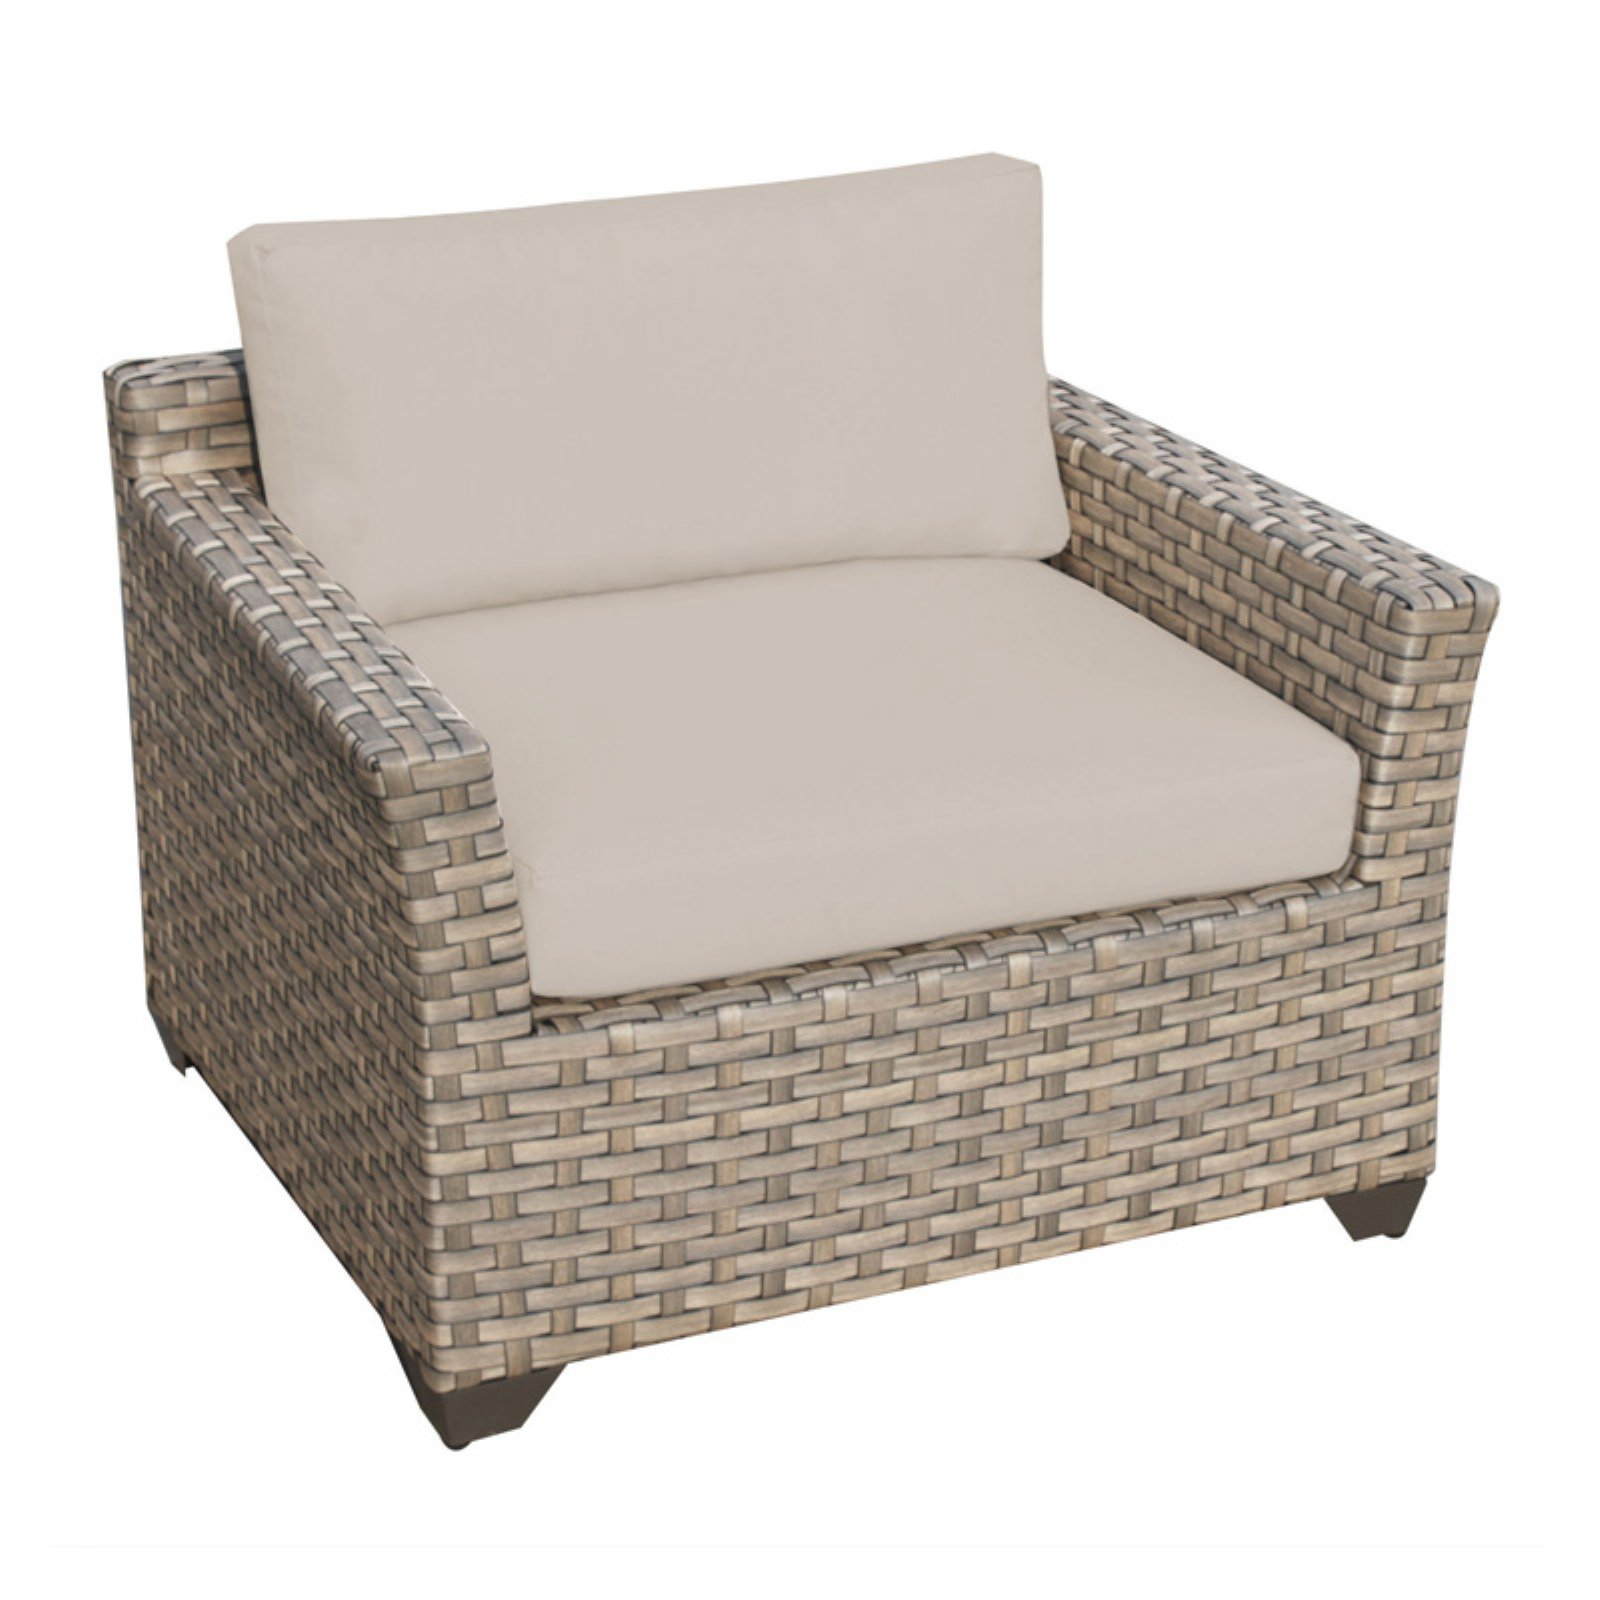 TK Classics Monterey Wicker Outdoor Club Chair - Set of 2 Cushion Covers